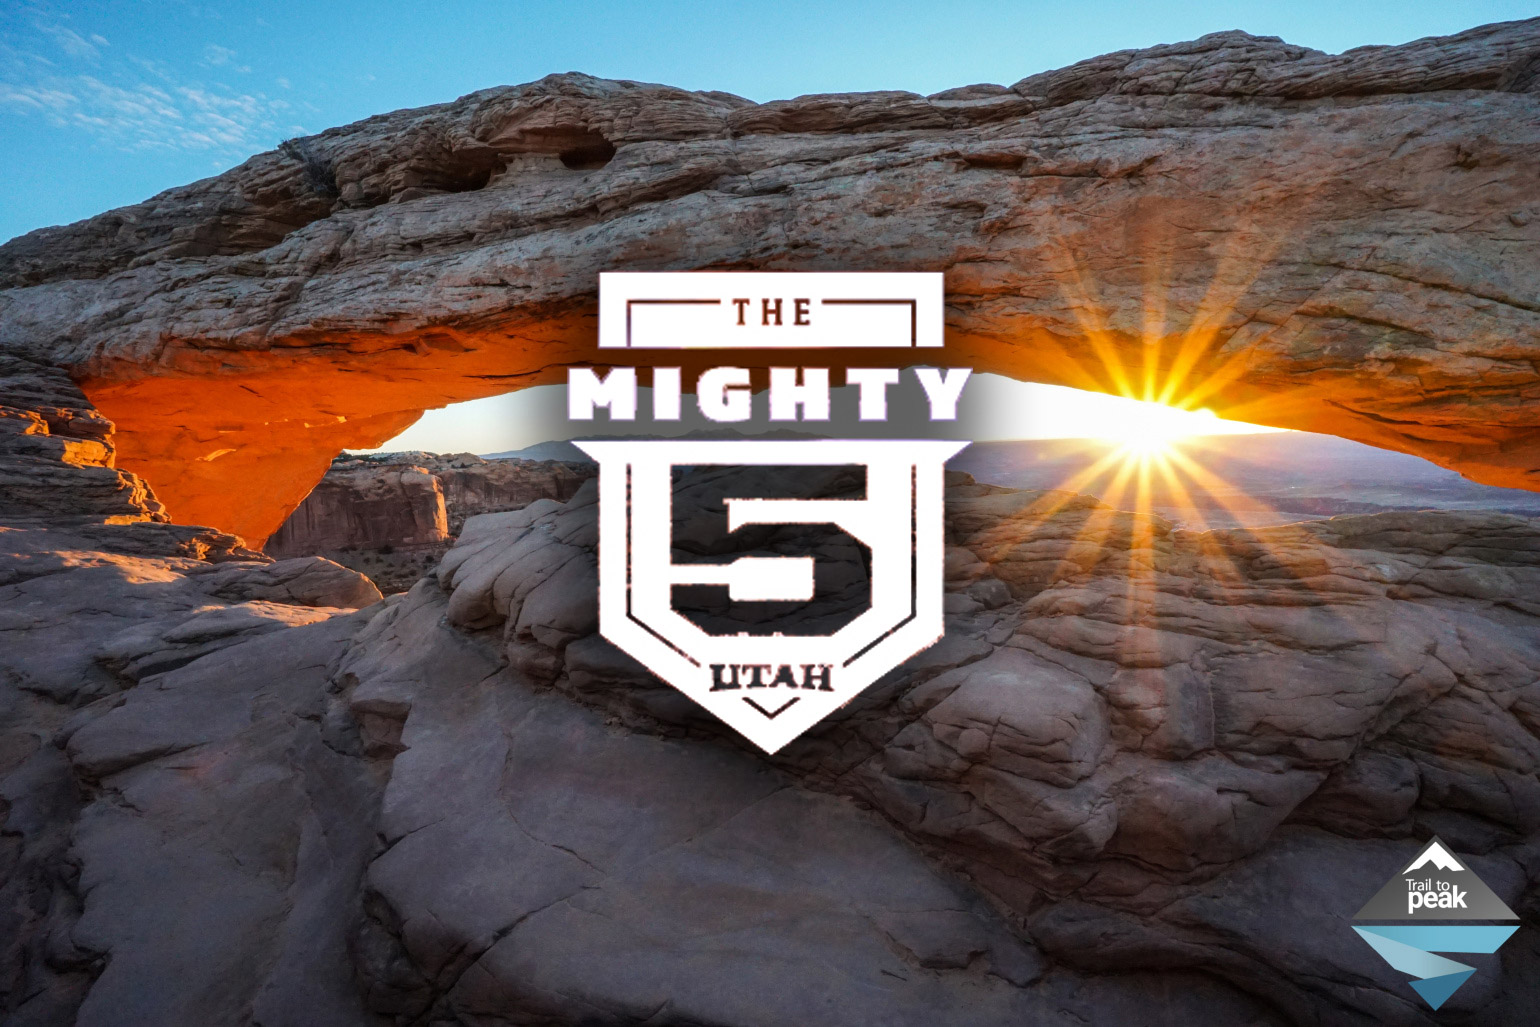 The Mighty 5 National Parks Utah, Arches, Zion, Canyonlands, Capitol Reef, BryceThe Mighty 5 National Parks Utah, Arches, Zion, Canyonlands, Capitol Reef, Bryce